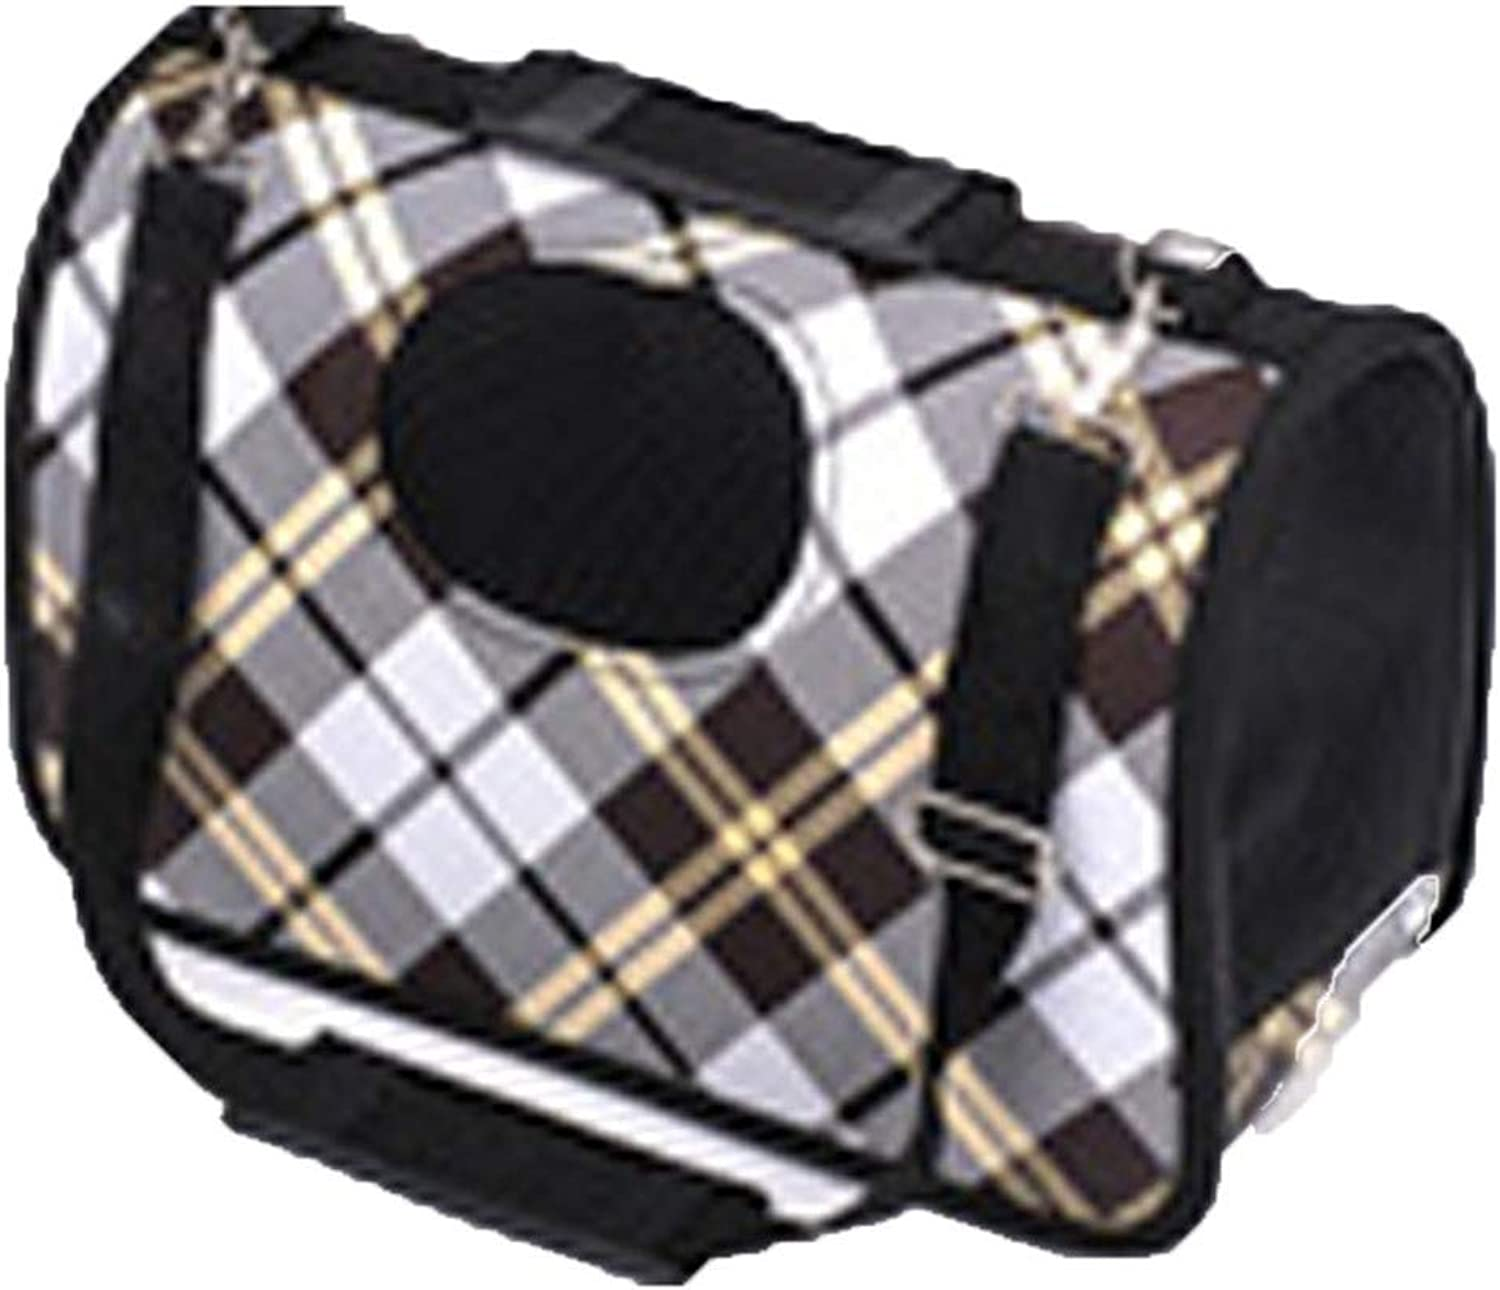 Comfortable Dog Backpack Pet Front Bag with Breathable Head Out Design and Padded Shoulder for Hiking Outdoor Travel